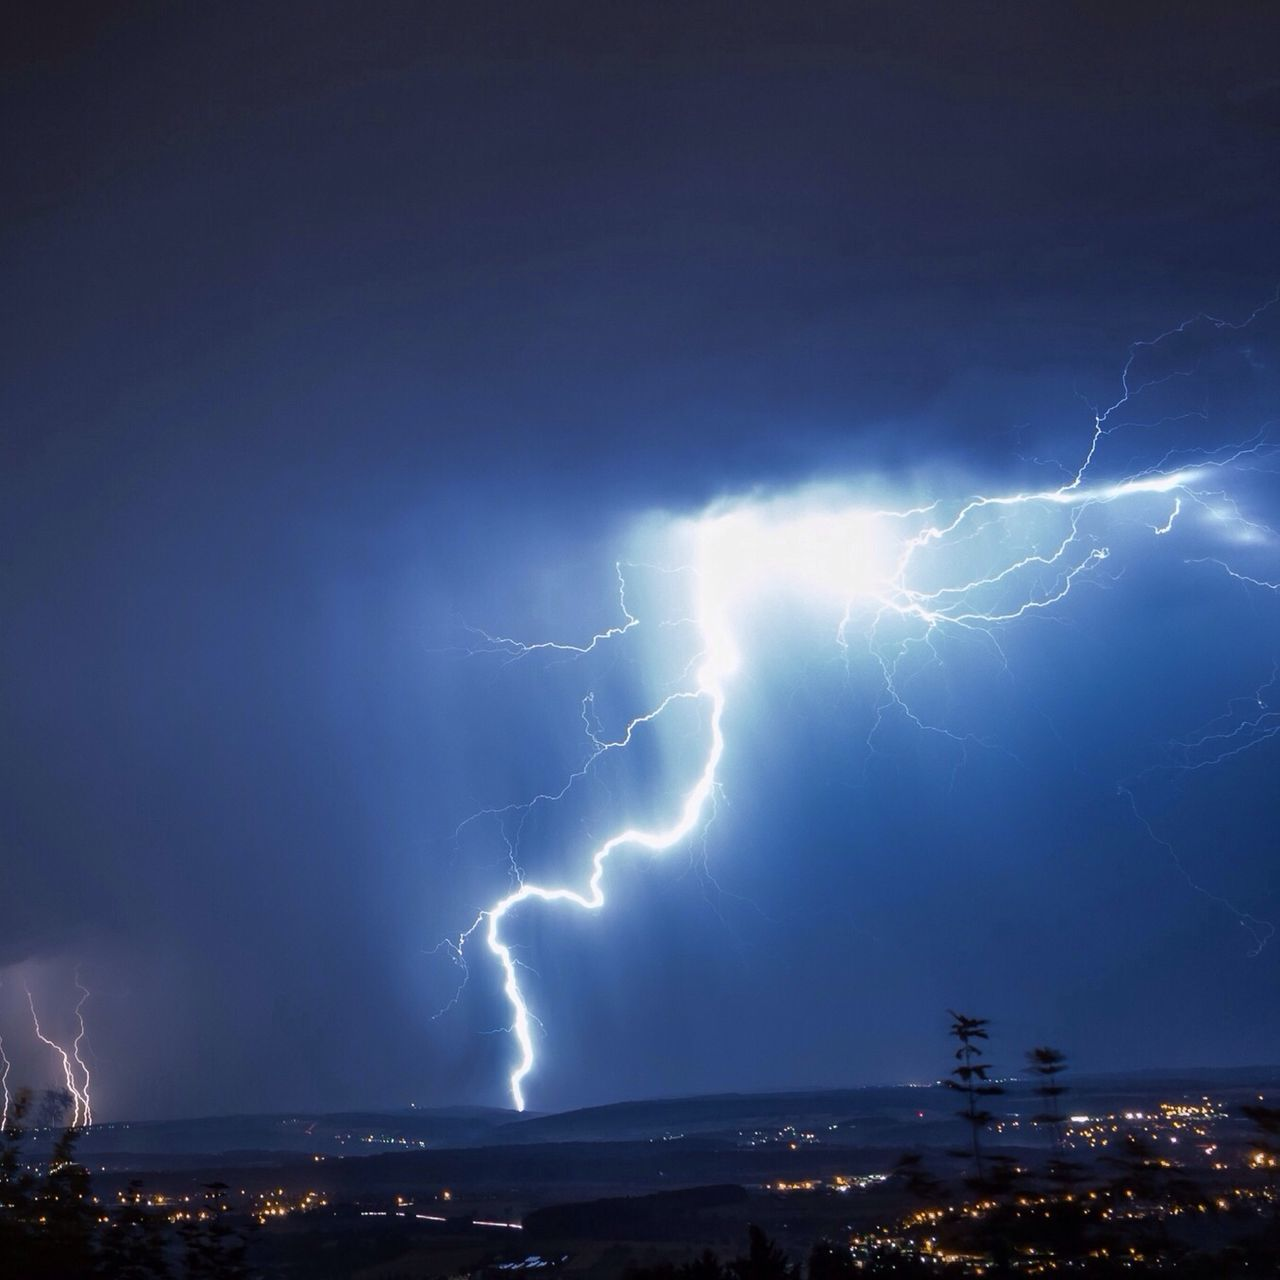 WeatherPro: Your Perfect Weather Shot, Lightning and Thunderstorm at Gammelshausen EyeEm Bestsellers